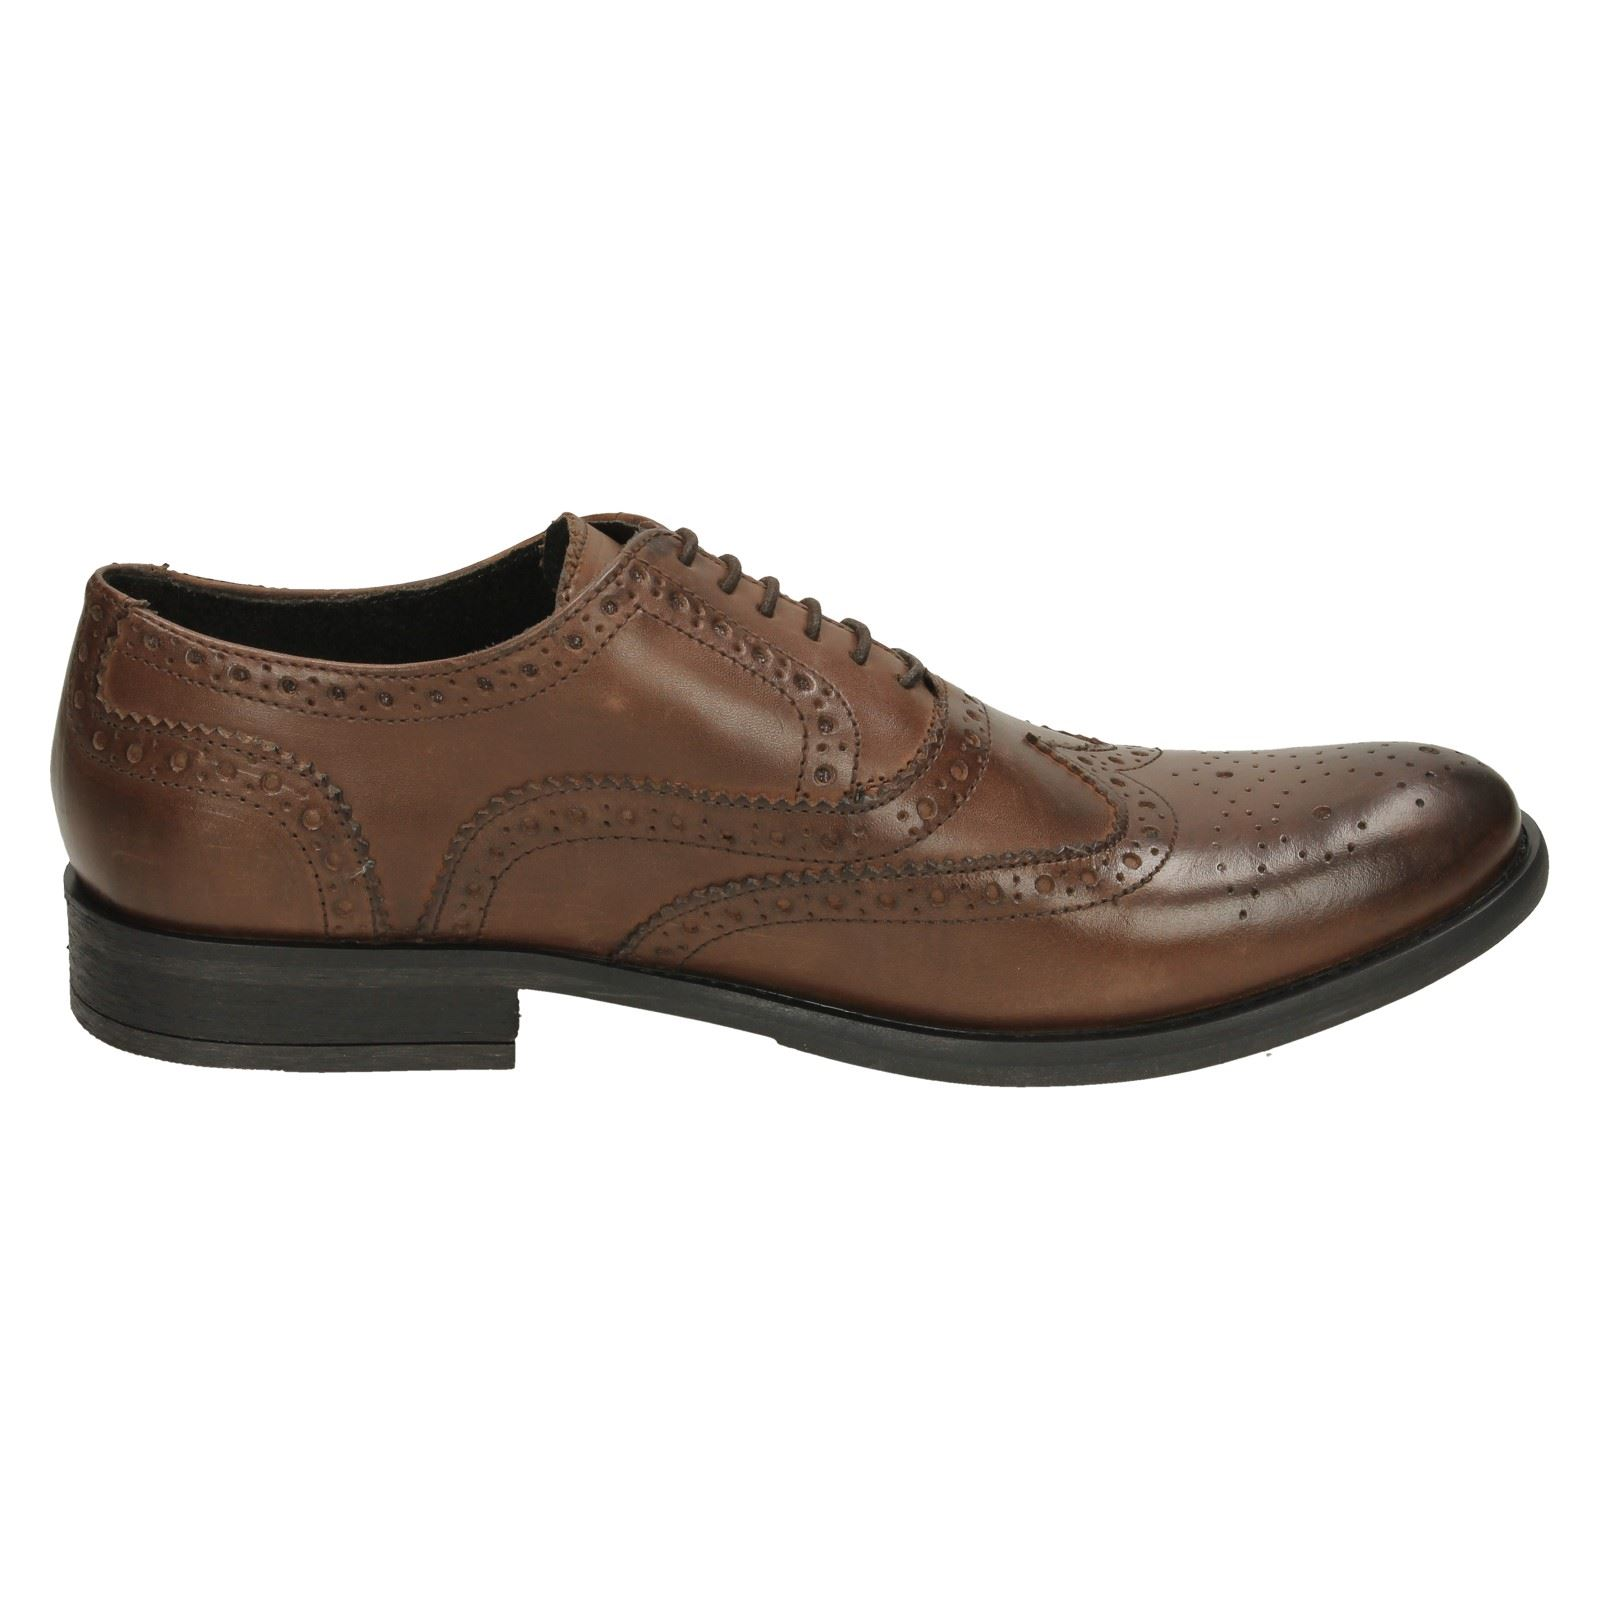 Herren Base London Brogue Leder Schuhes Walnut fbfecc